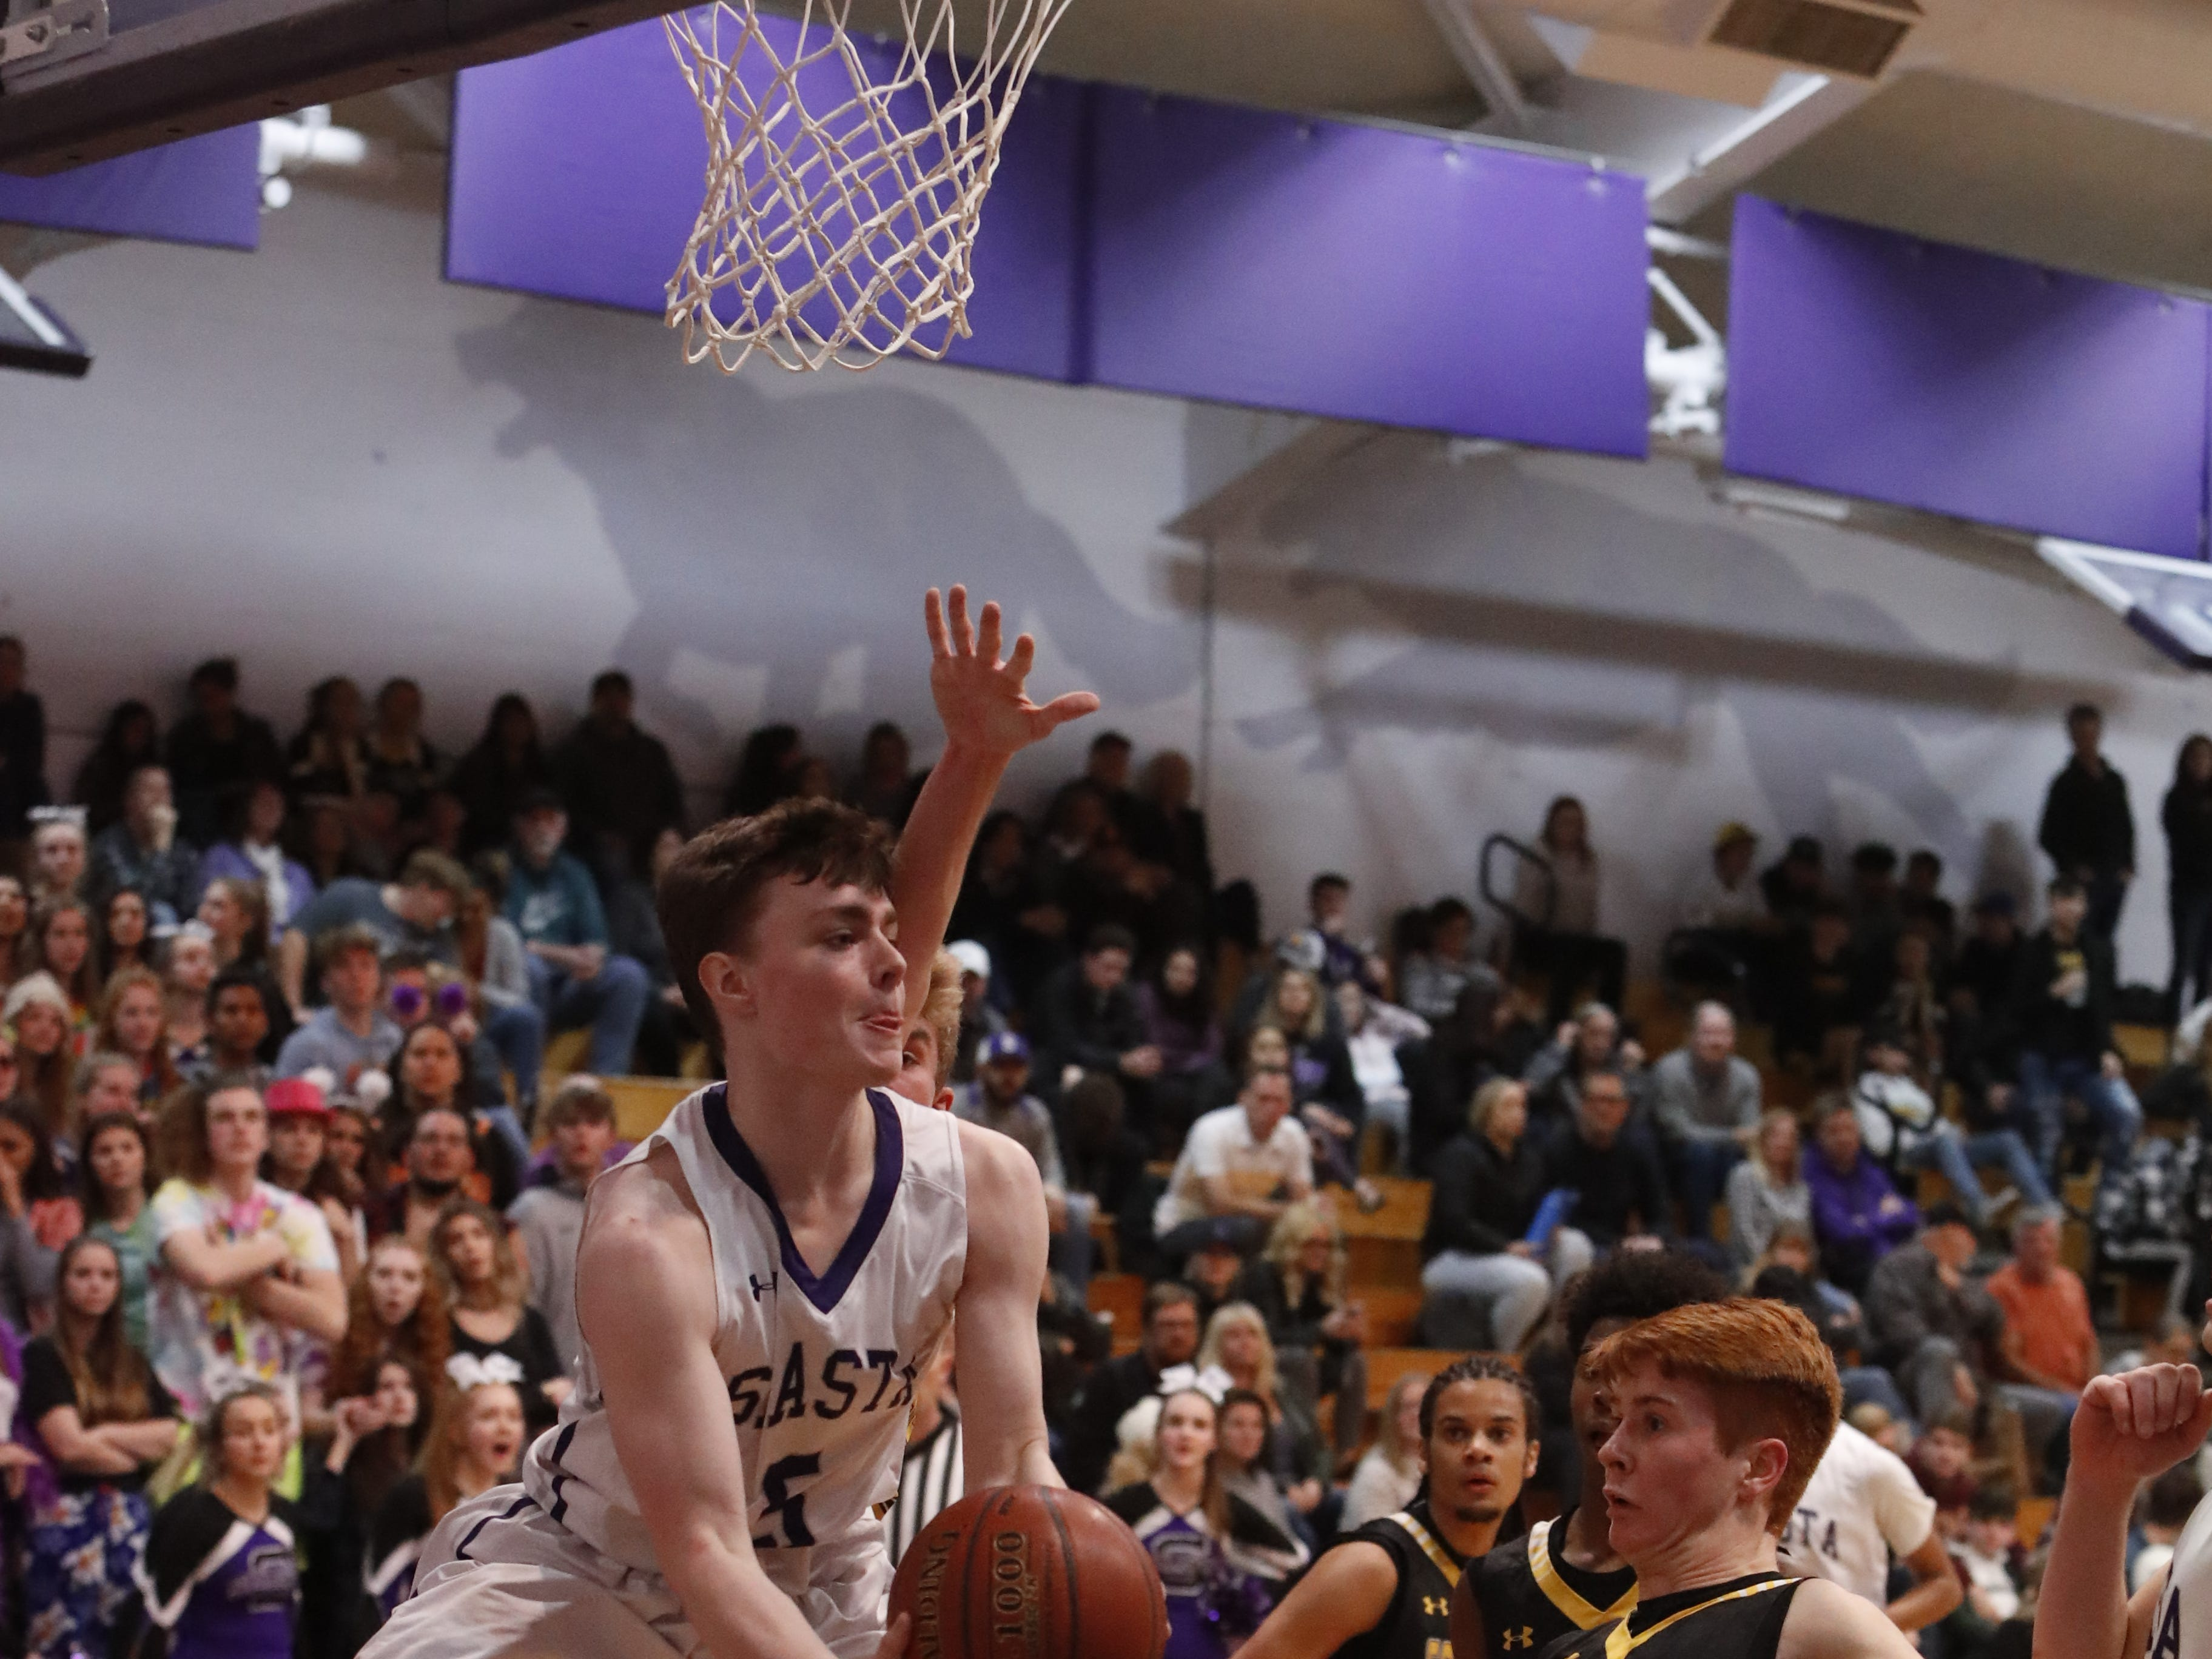 Shasta's Caden Cushman looks to pass the ball from under the rim during the second half of Shasta's 75-58 win over Enterprise on Tuesday, Feb. 5, 2019.